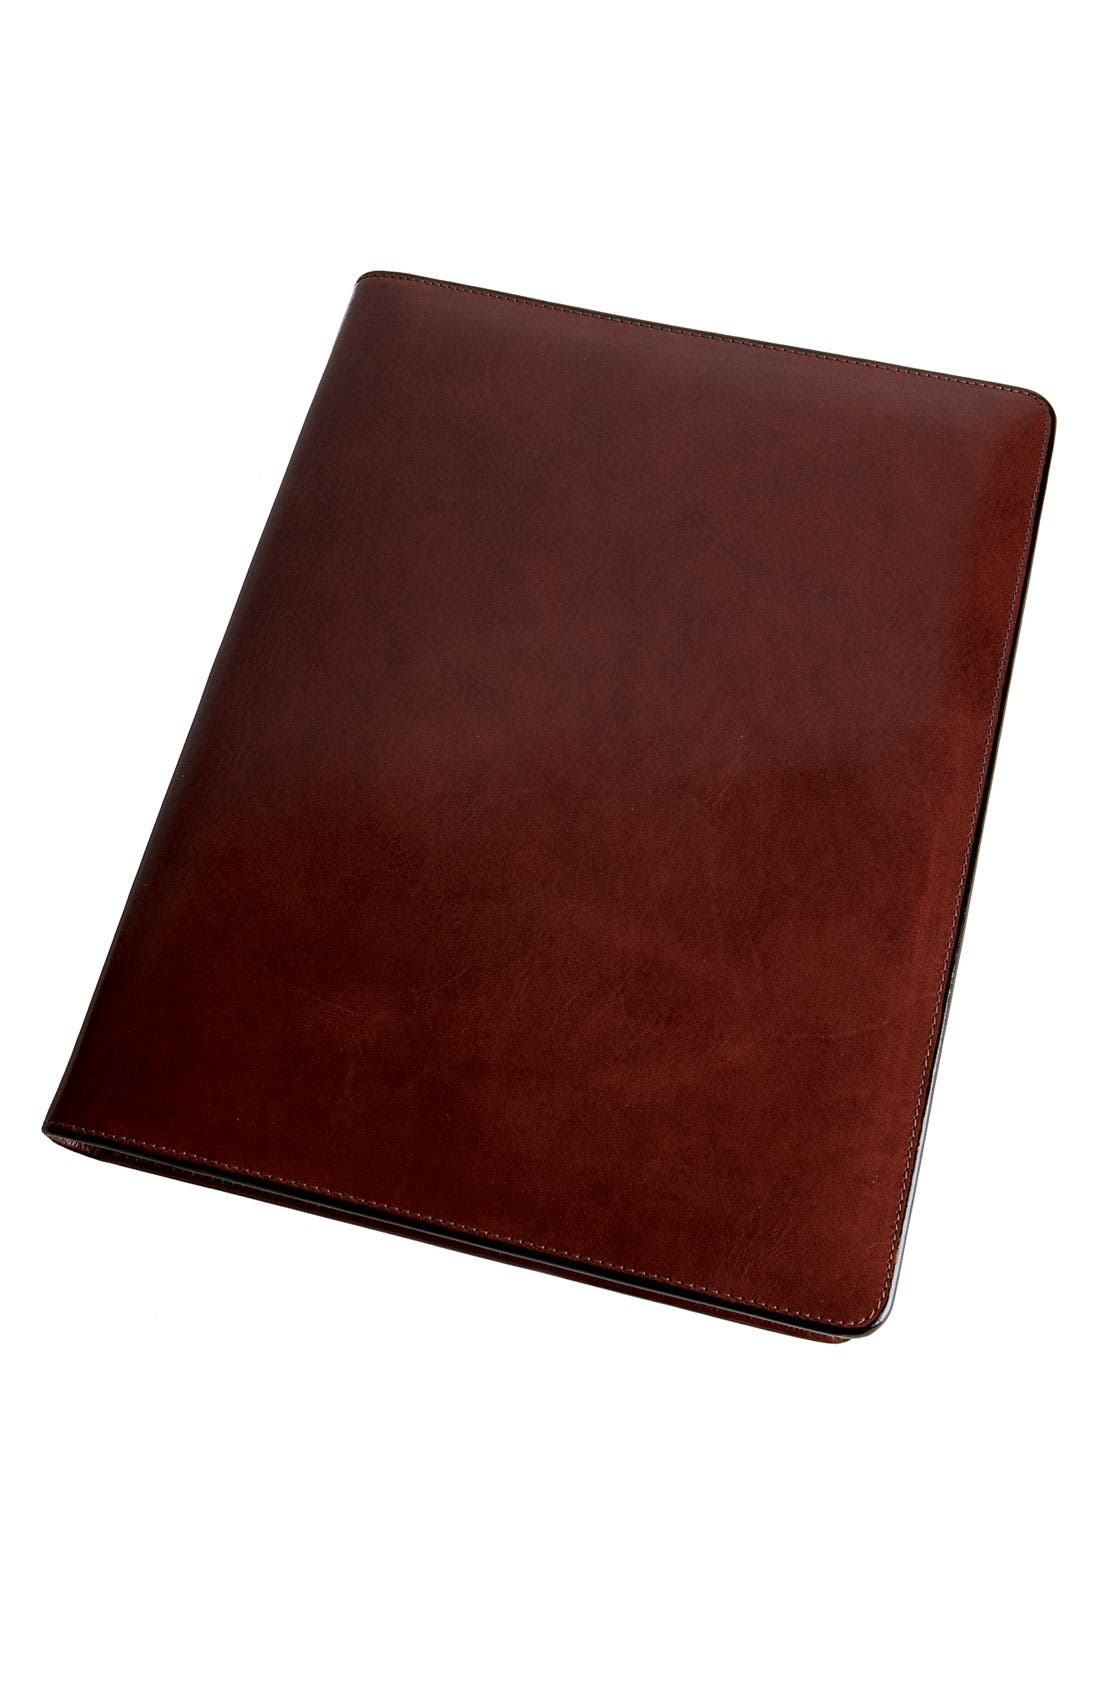 Leather Letter Pad Cover,                         Main,                         color, BROWN OLD LEATHER